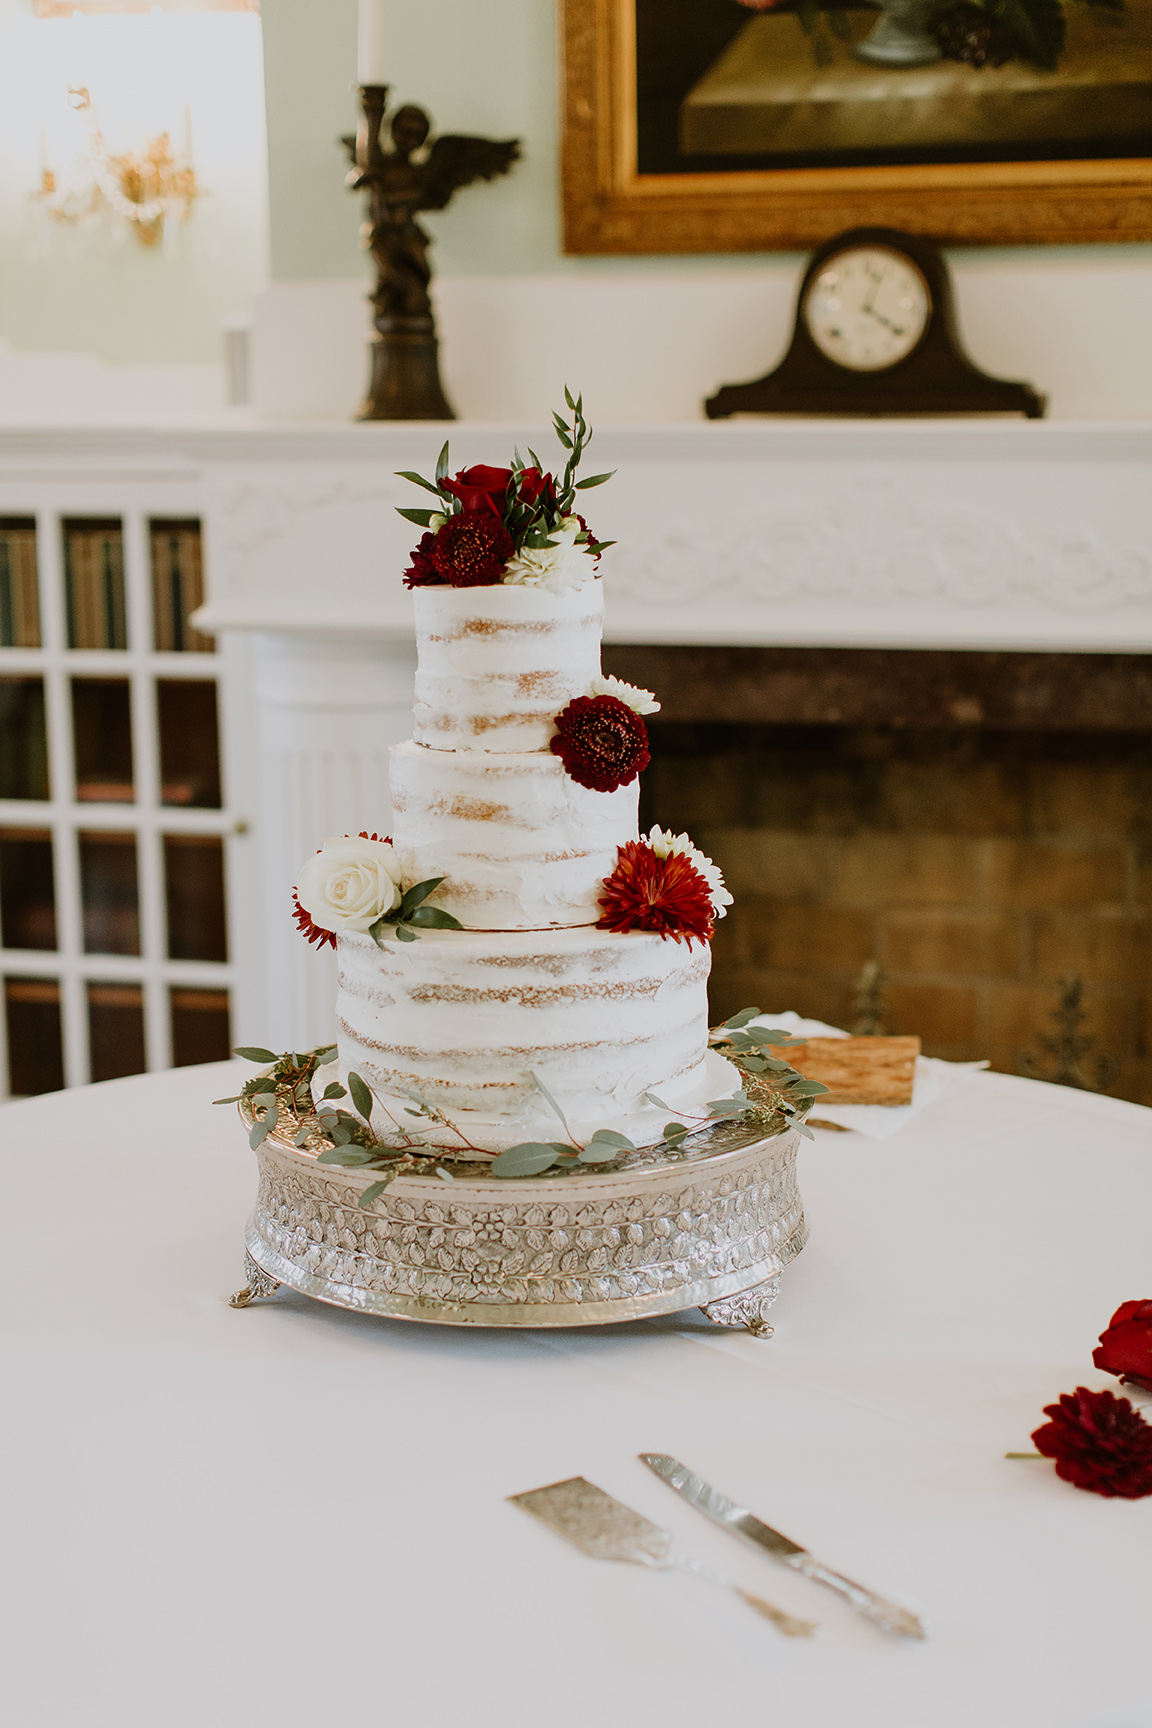 gardens at madeley manor, wedding cake, naked cake, white & red, real wedding, texas